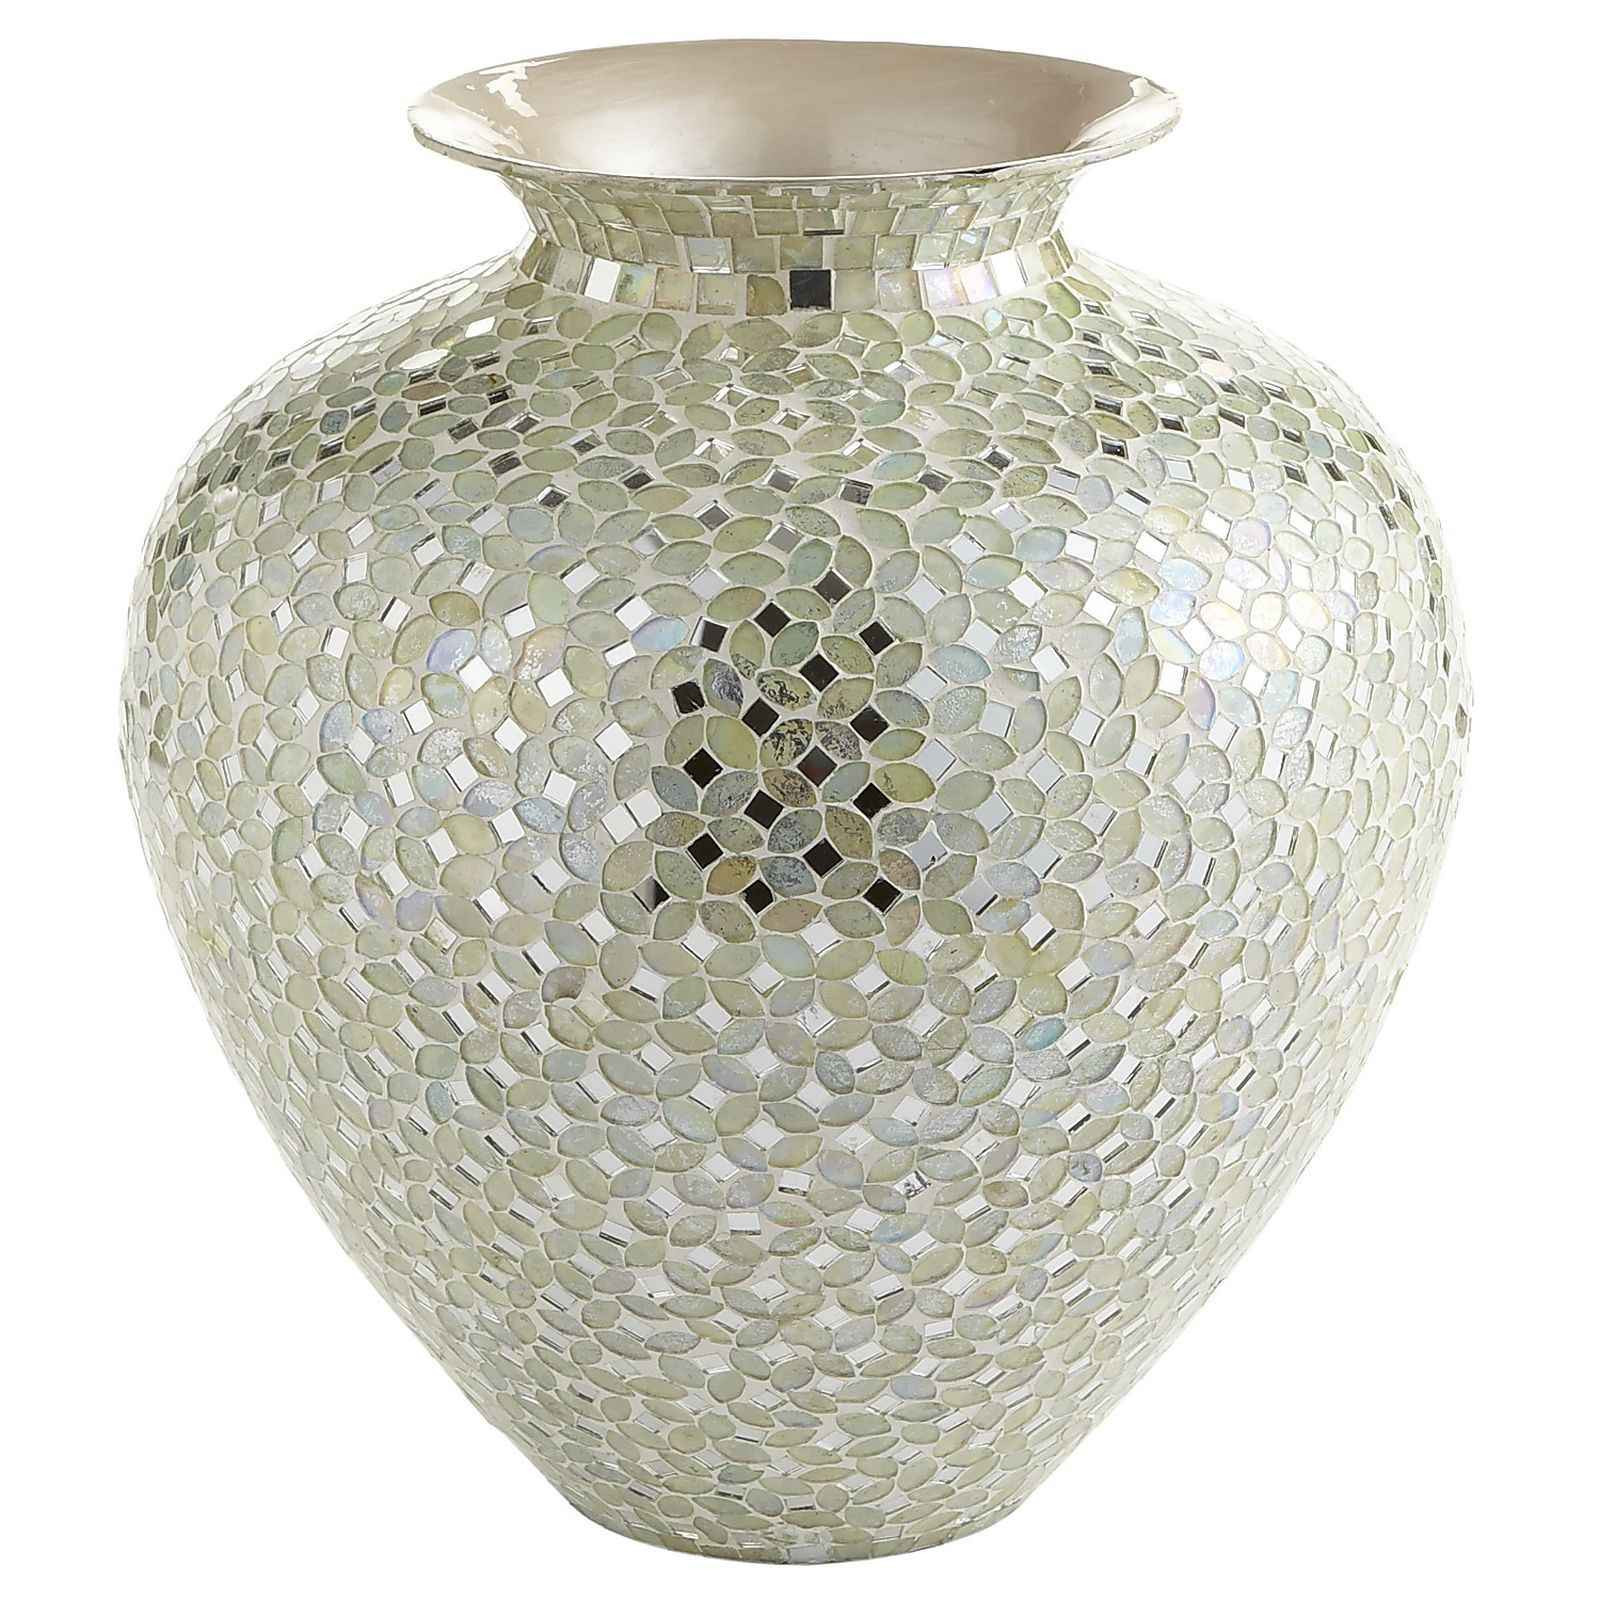 glass mosaic vases wholesale of candle holder wholesale glass votive candle holders new l h vases throughout mosaic tiles glass vase gifts mirtex 76 262h vases mosiac i 6d from big glass candle